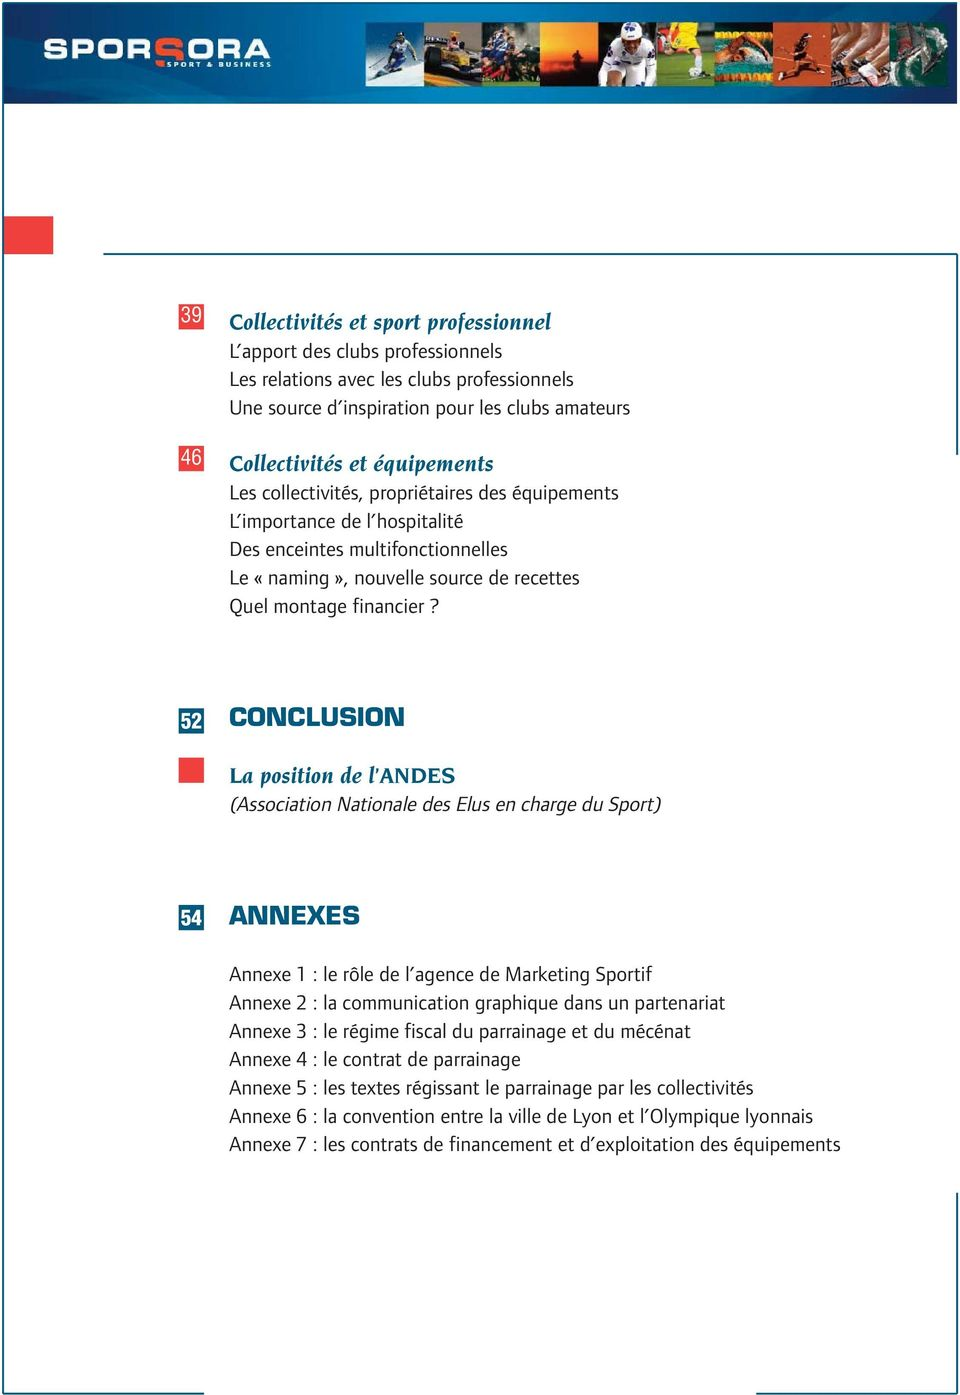 52 CONCLUSION La position de l ANDES (Association Nationale des Elus en charge du Sport) 54 ANNEXES Annexe 1 : le rôle de l agence de Marketing Sportif Annexe 2 : la communication graphique dans un